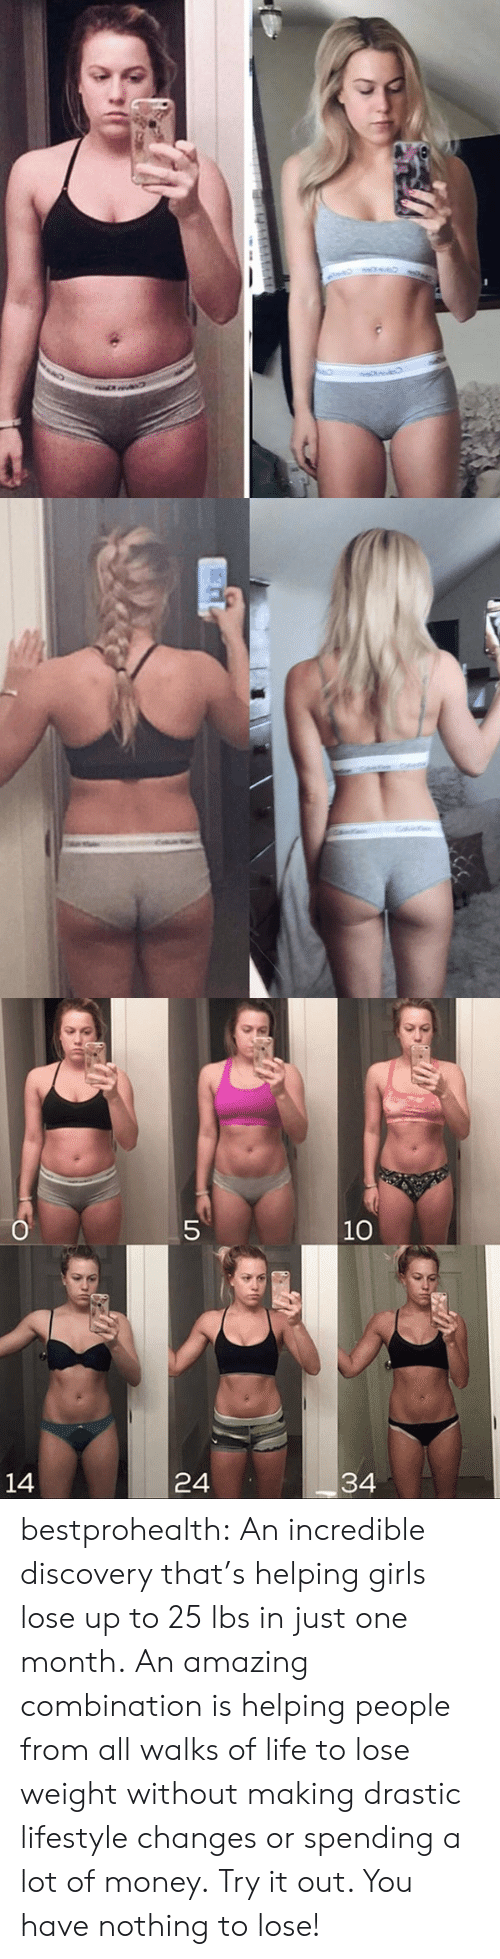 Girls, Life, and Money: O  5  10  34  24  14 bestprohealth:  An incredible discovery that'shelping girls lose up to 25 lbs in just one month. An amazing combination is helping people from all walks of life to lose weight without making drastic lifestyle changes or spending a lot of money. Try it out. You have nothing to lose!